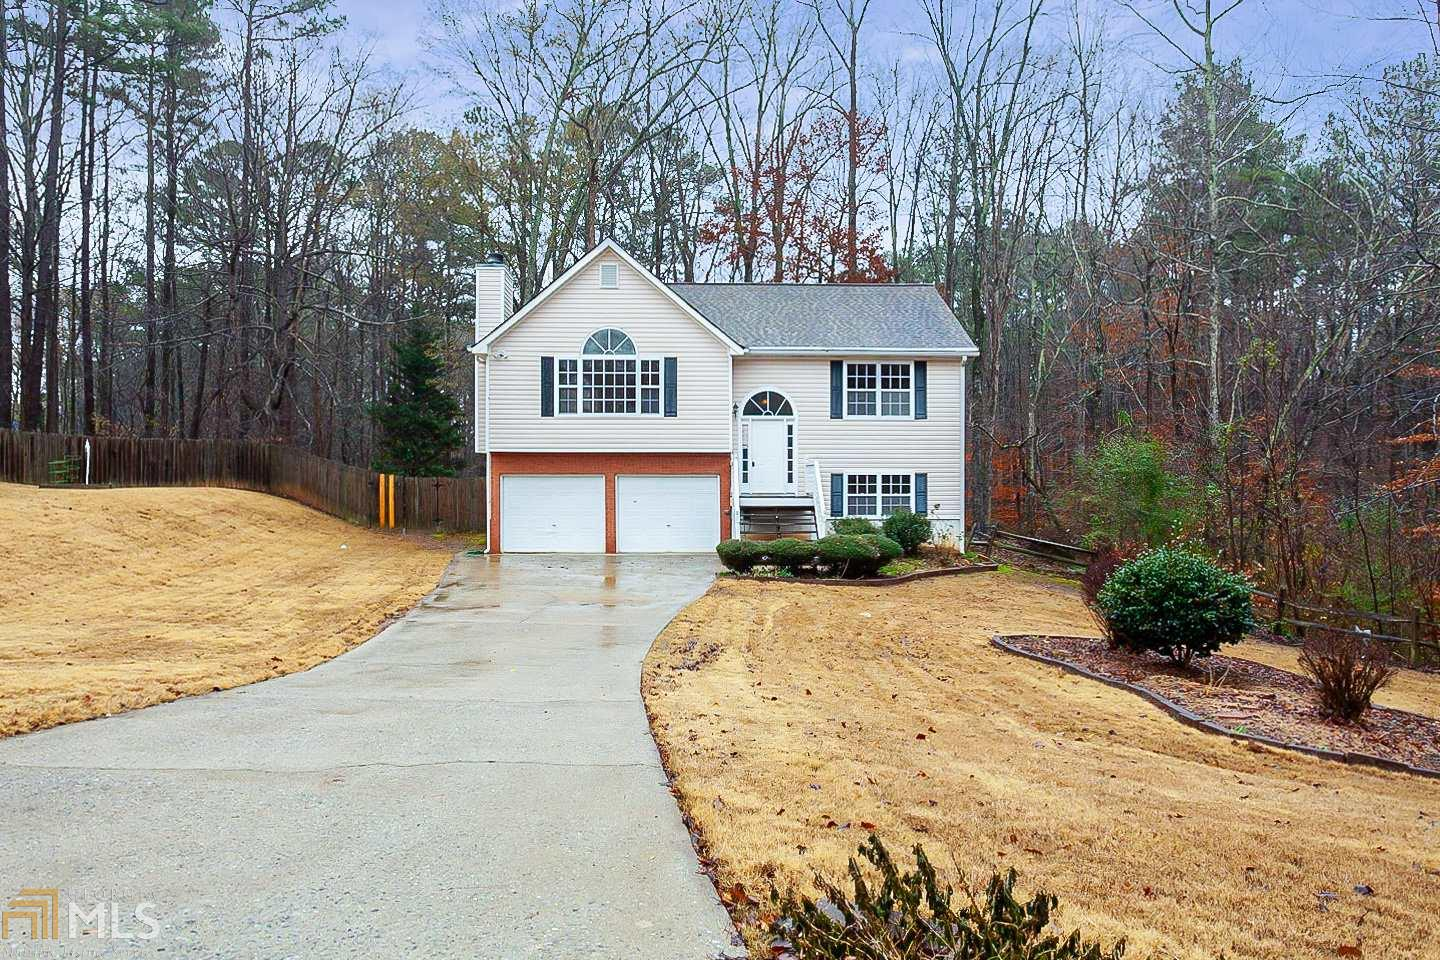 460 Highlander, Acworth, Georgia 30101, 3 Bedrooms Bedrooms, ,3 BathroomsBathrooms,Single Family,For Sale,460 Highlander,2,8909707